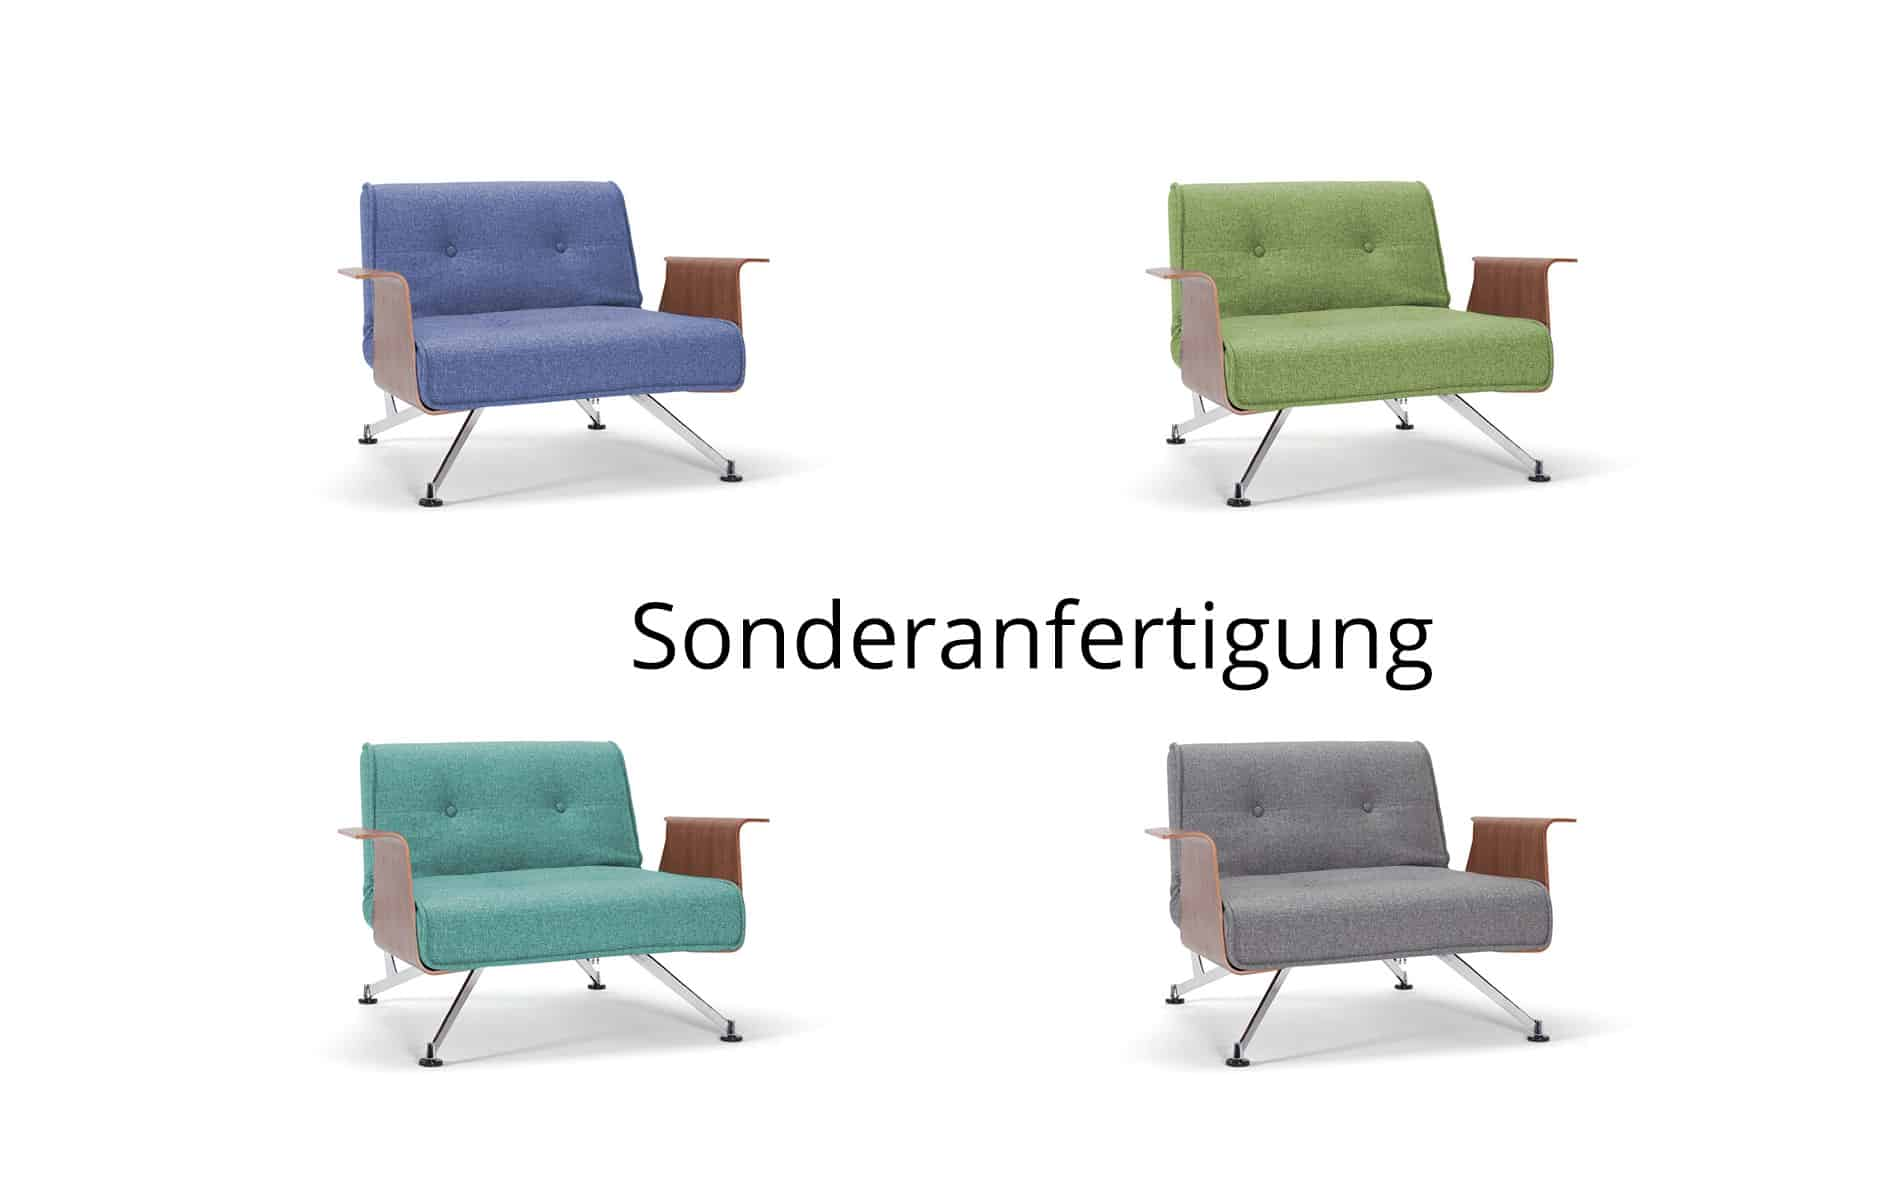 Innovation Clubber Sessel Clubber 03 Chair Sessel Mit Armlehnen Sonderanfertigung